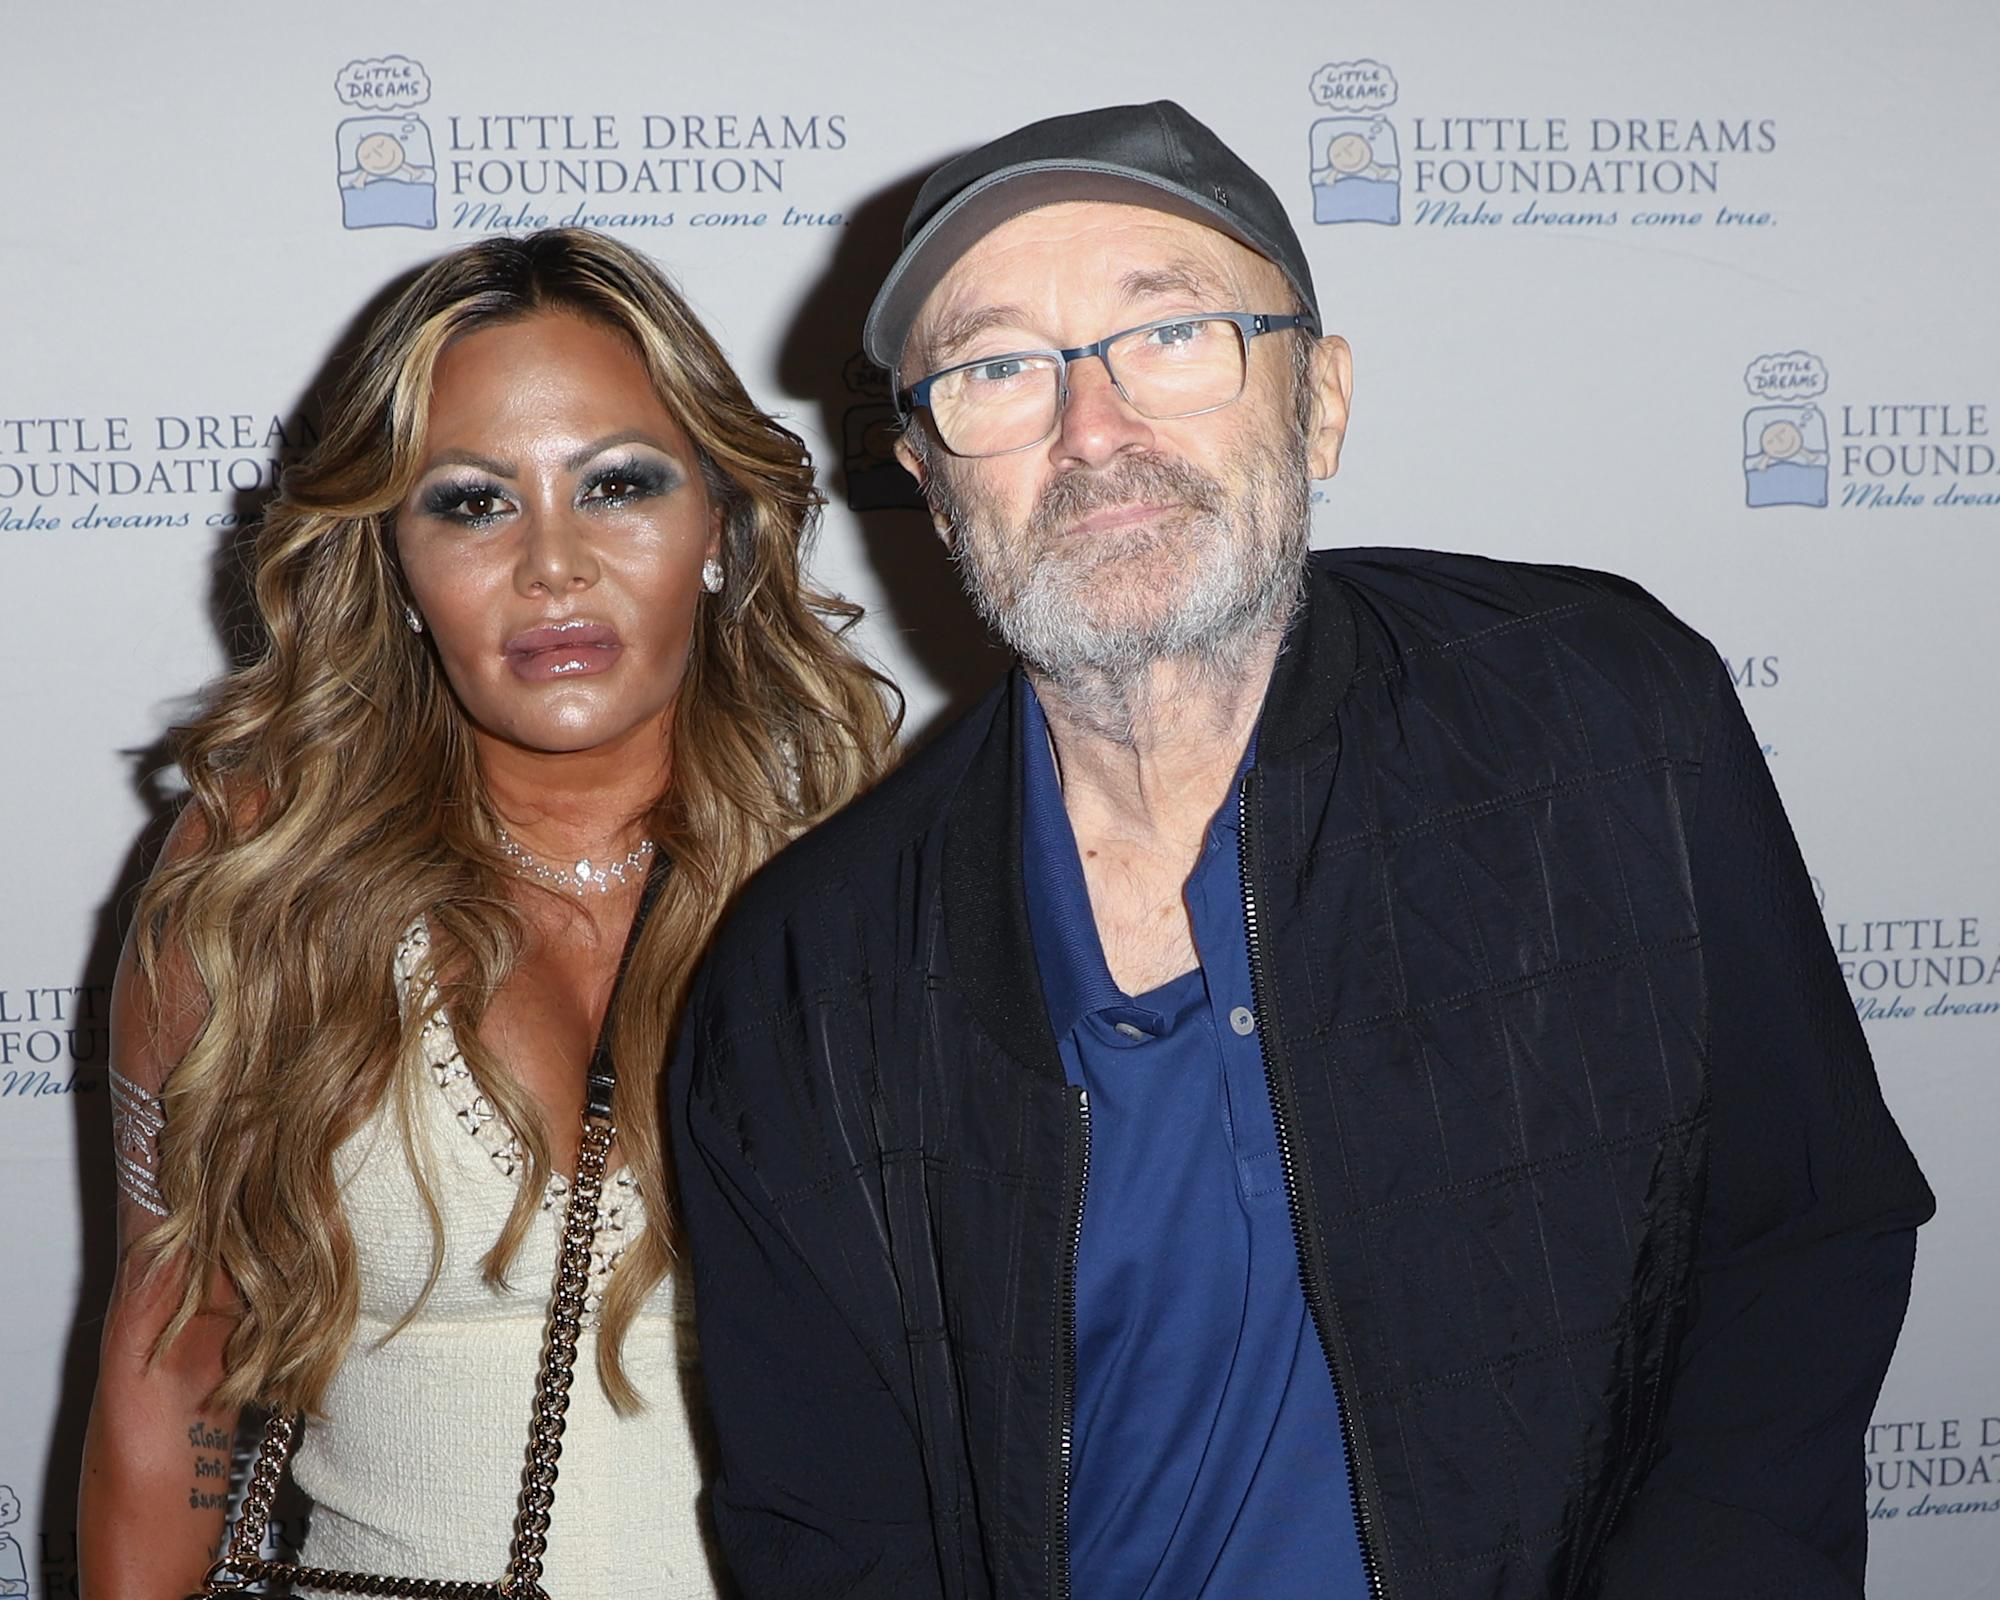 Phil Collins Ex Wife Agrees To Leave His Miami Mansion She D Been Living In With New Husband